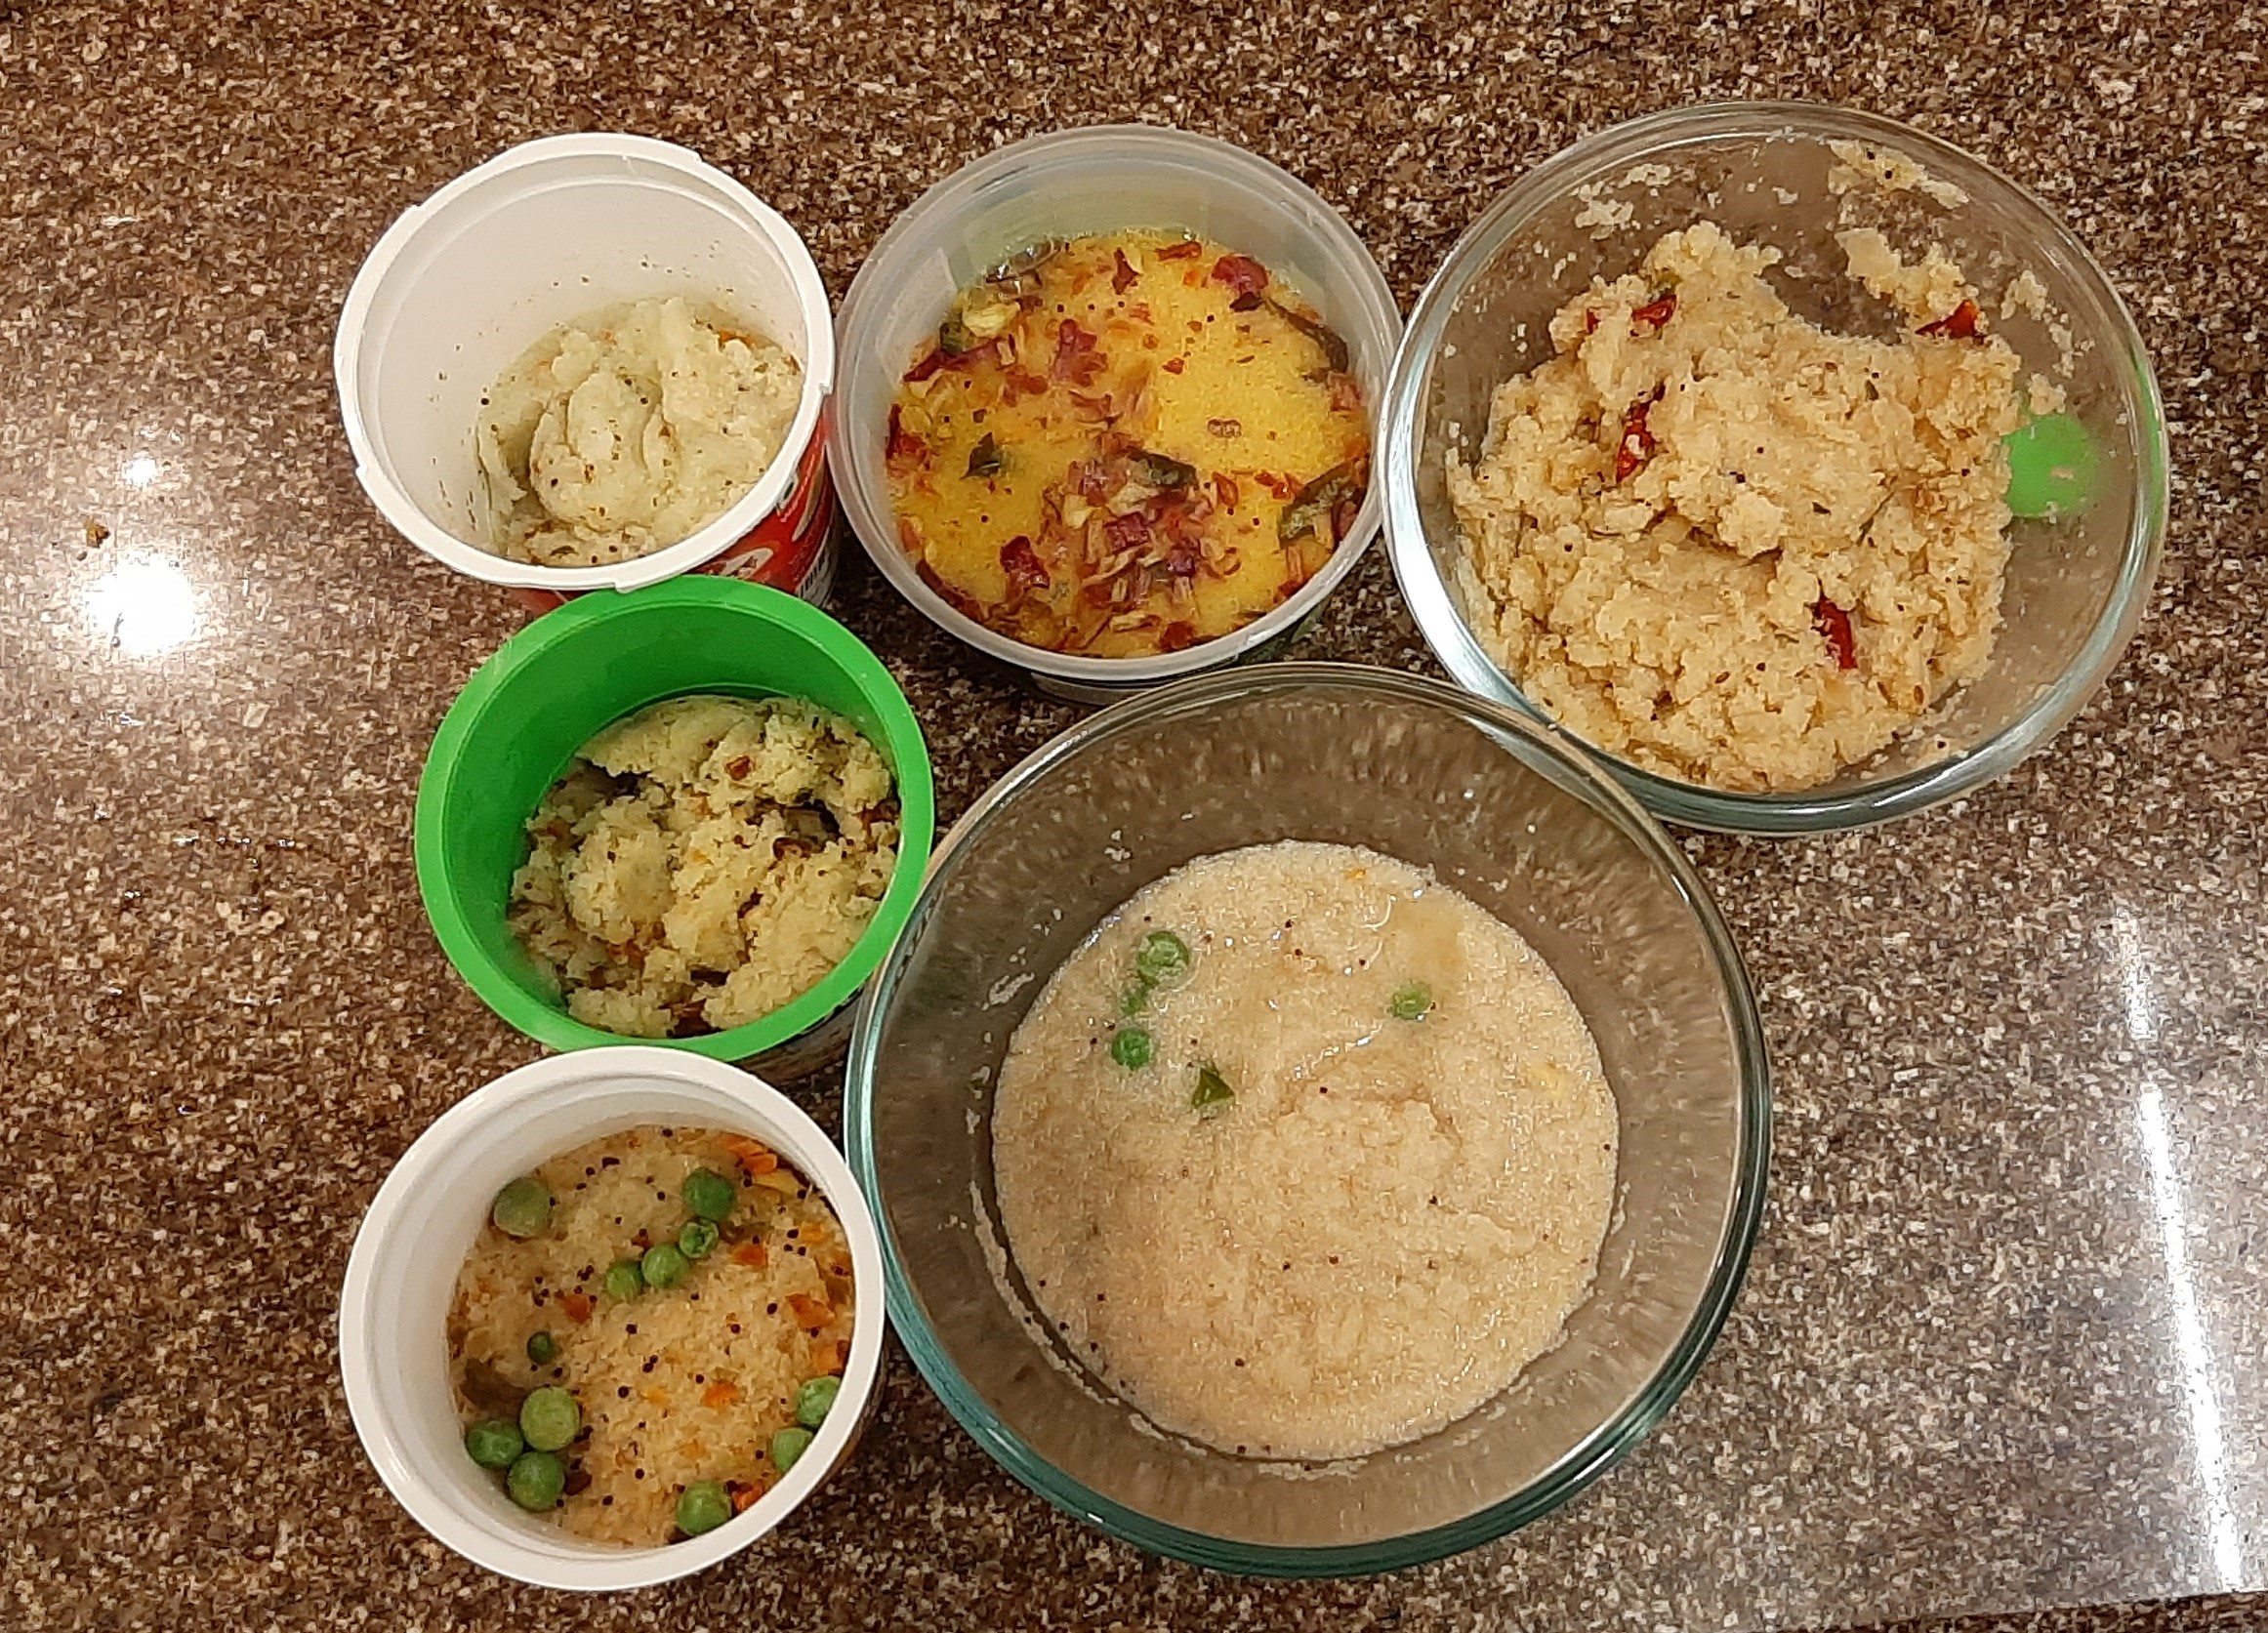 Best Ready To Eat Upma For A Quick Breakfast – Mishry Reviews